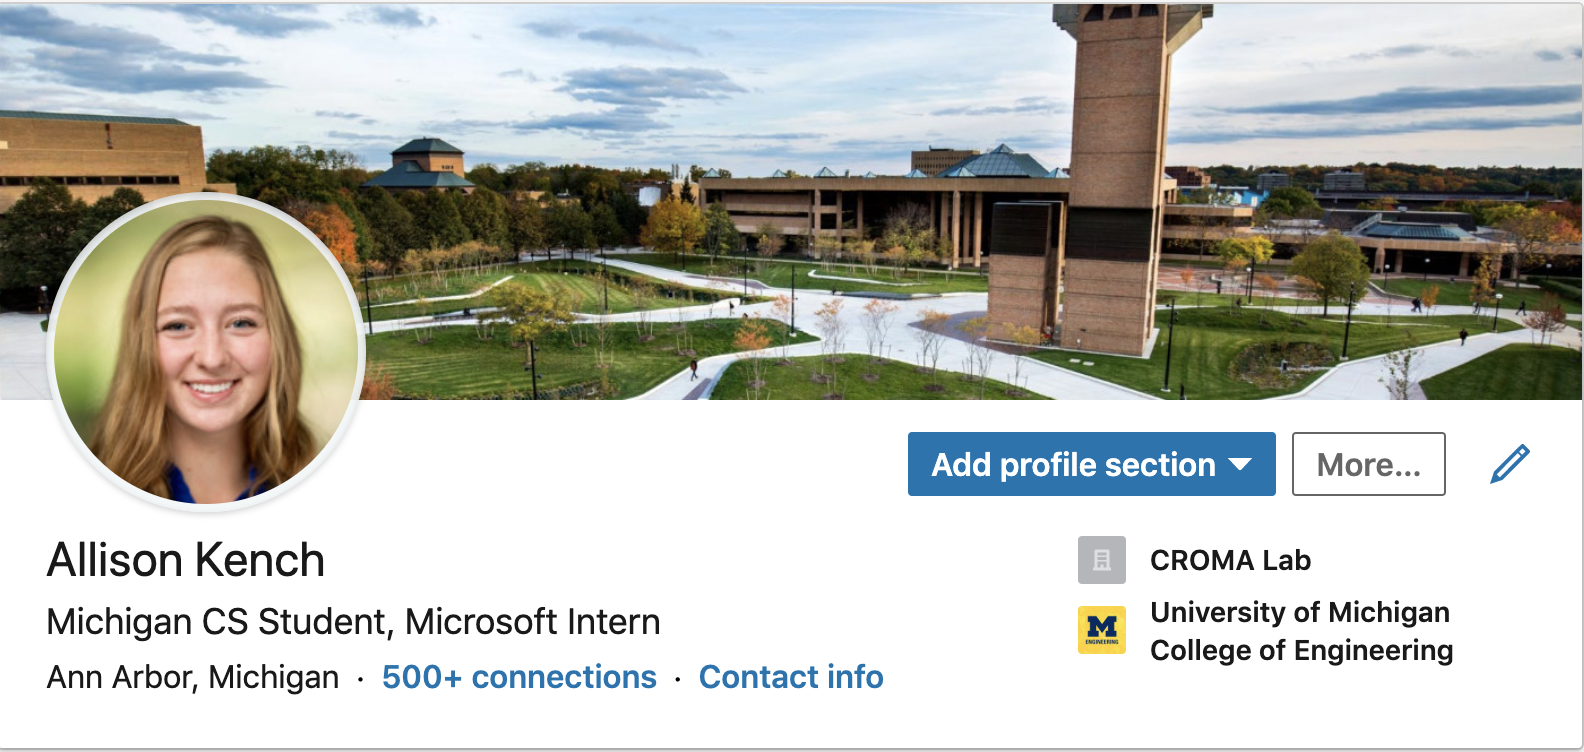 My LinkedIn header with my tagline, location, and college